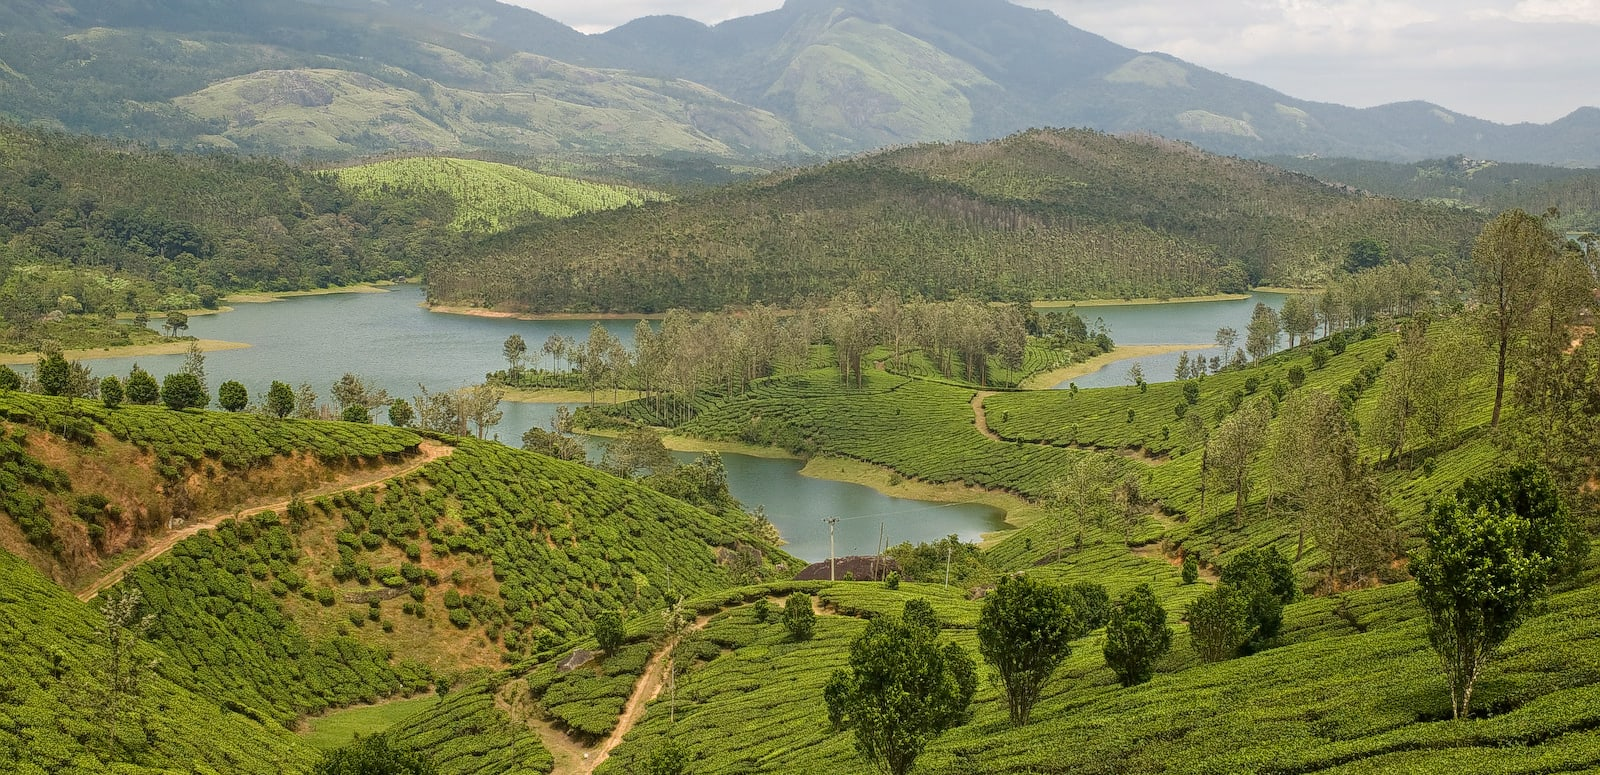 15 Best Places to Visit in Yelagiri - 2019 (Photos & Reviews)